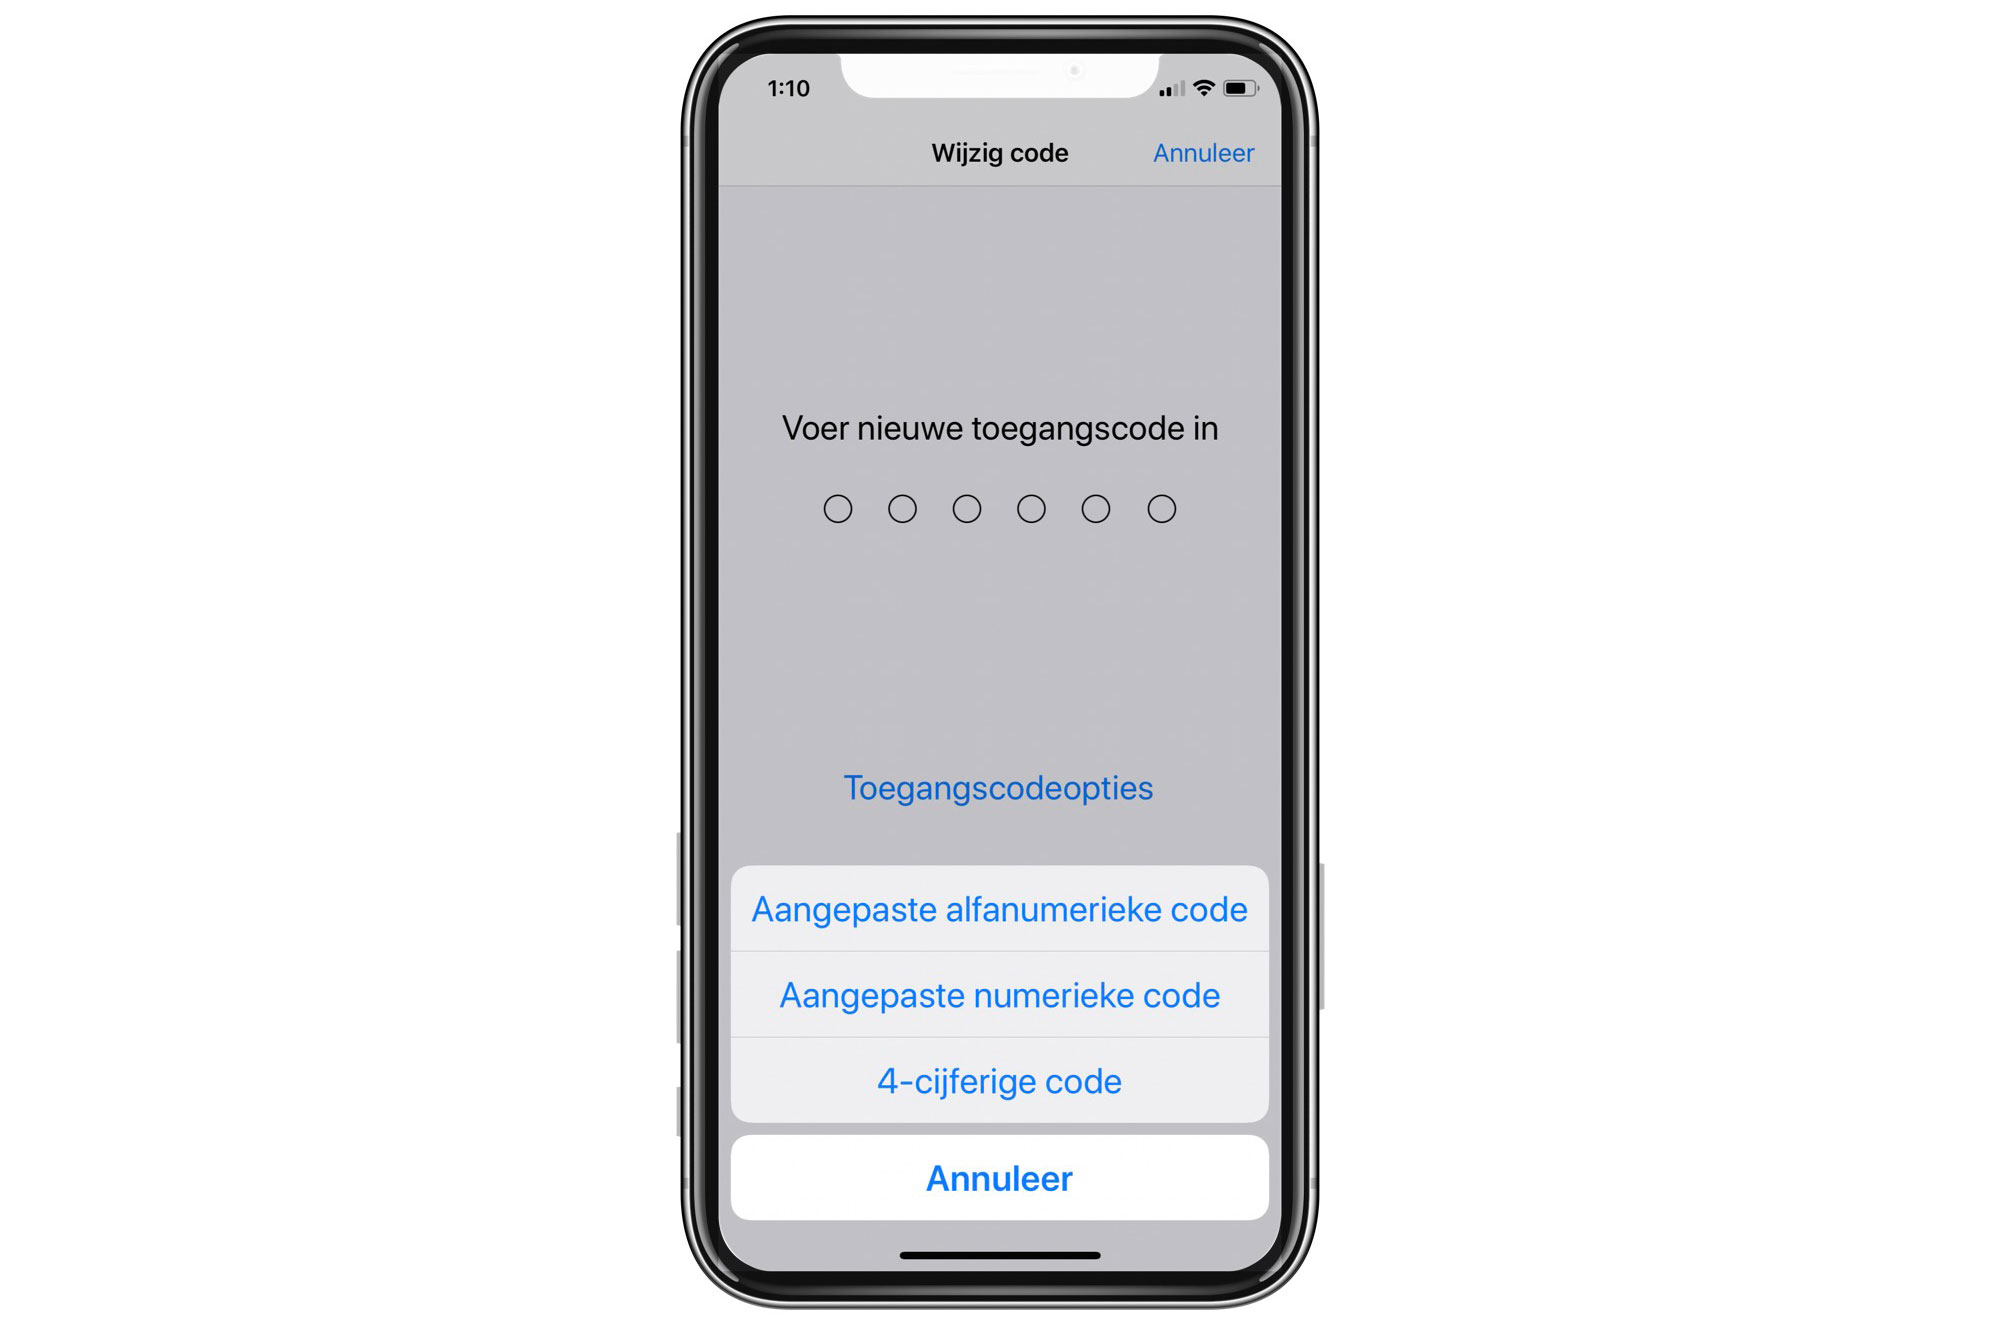 https://www.macfreak.nl/modules/news/images/zArt.iPhoneXAangepasteAlfanumeriekeCode.jpg